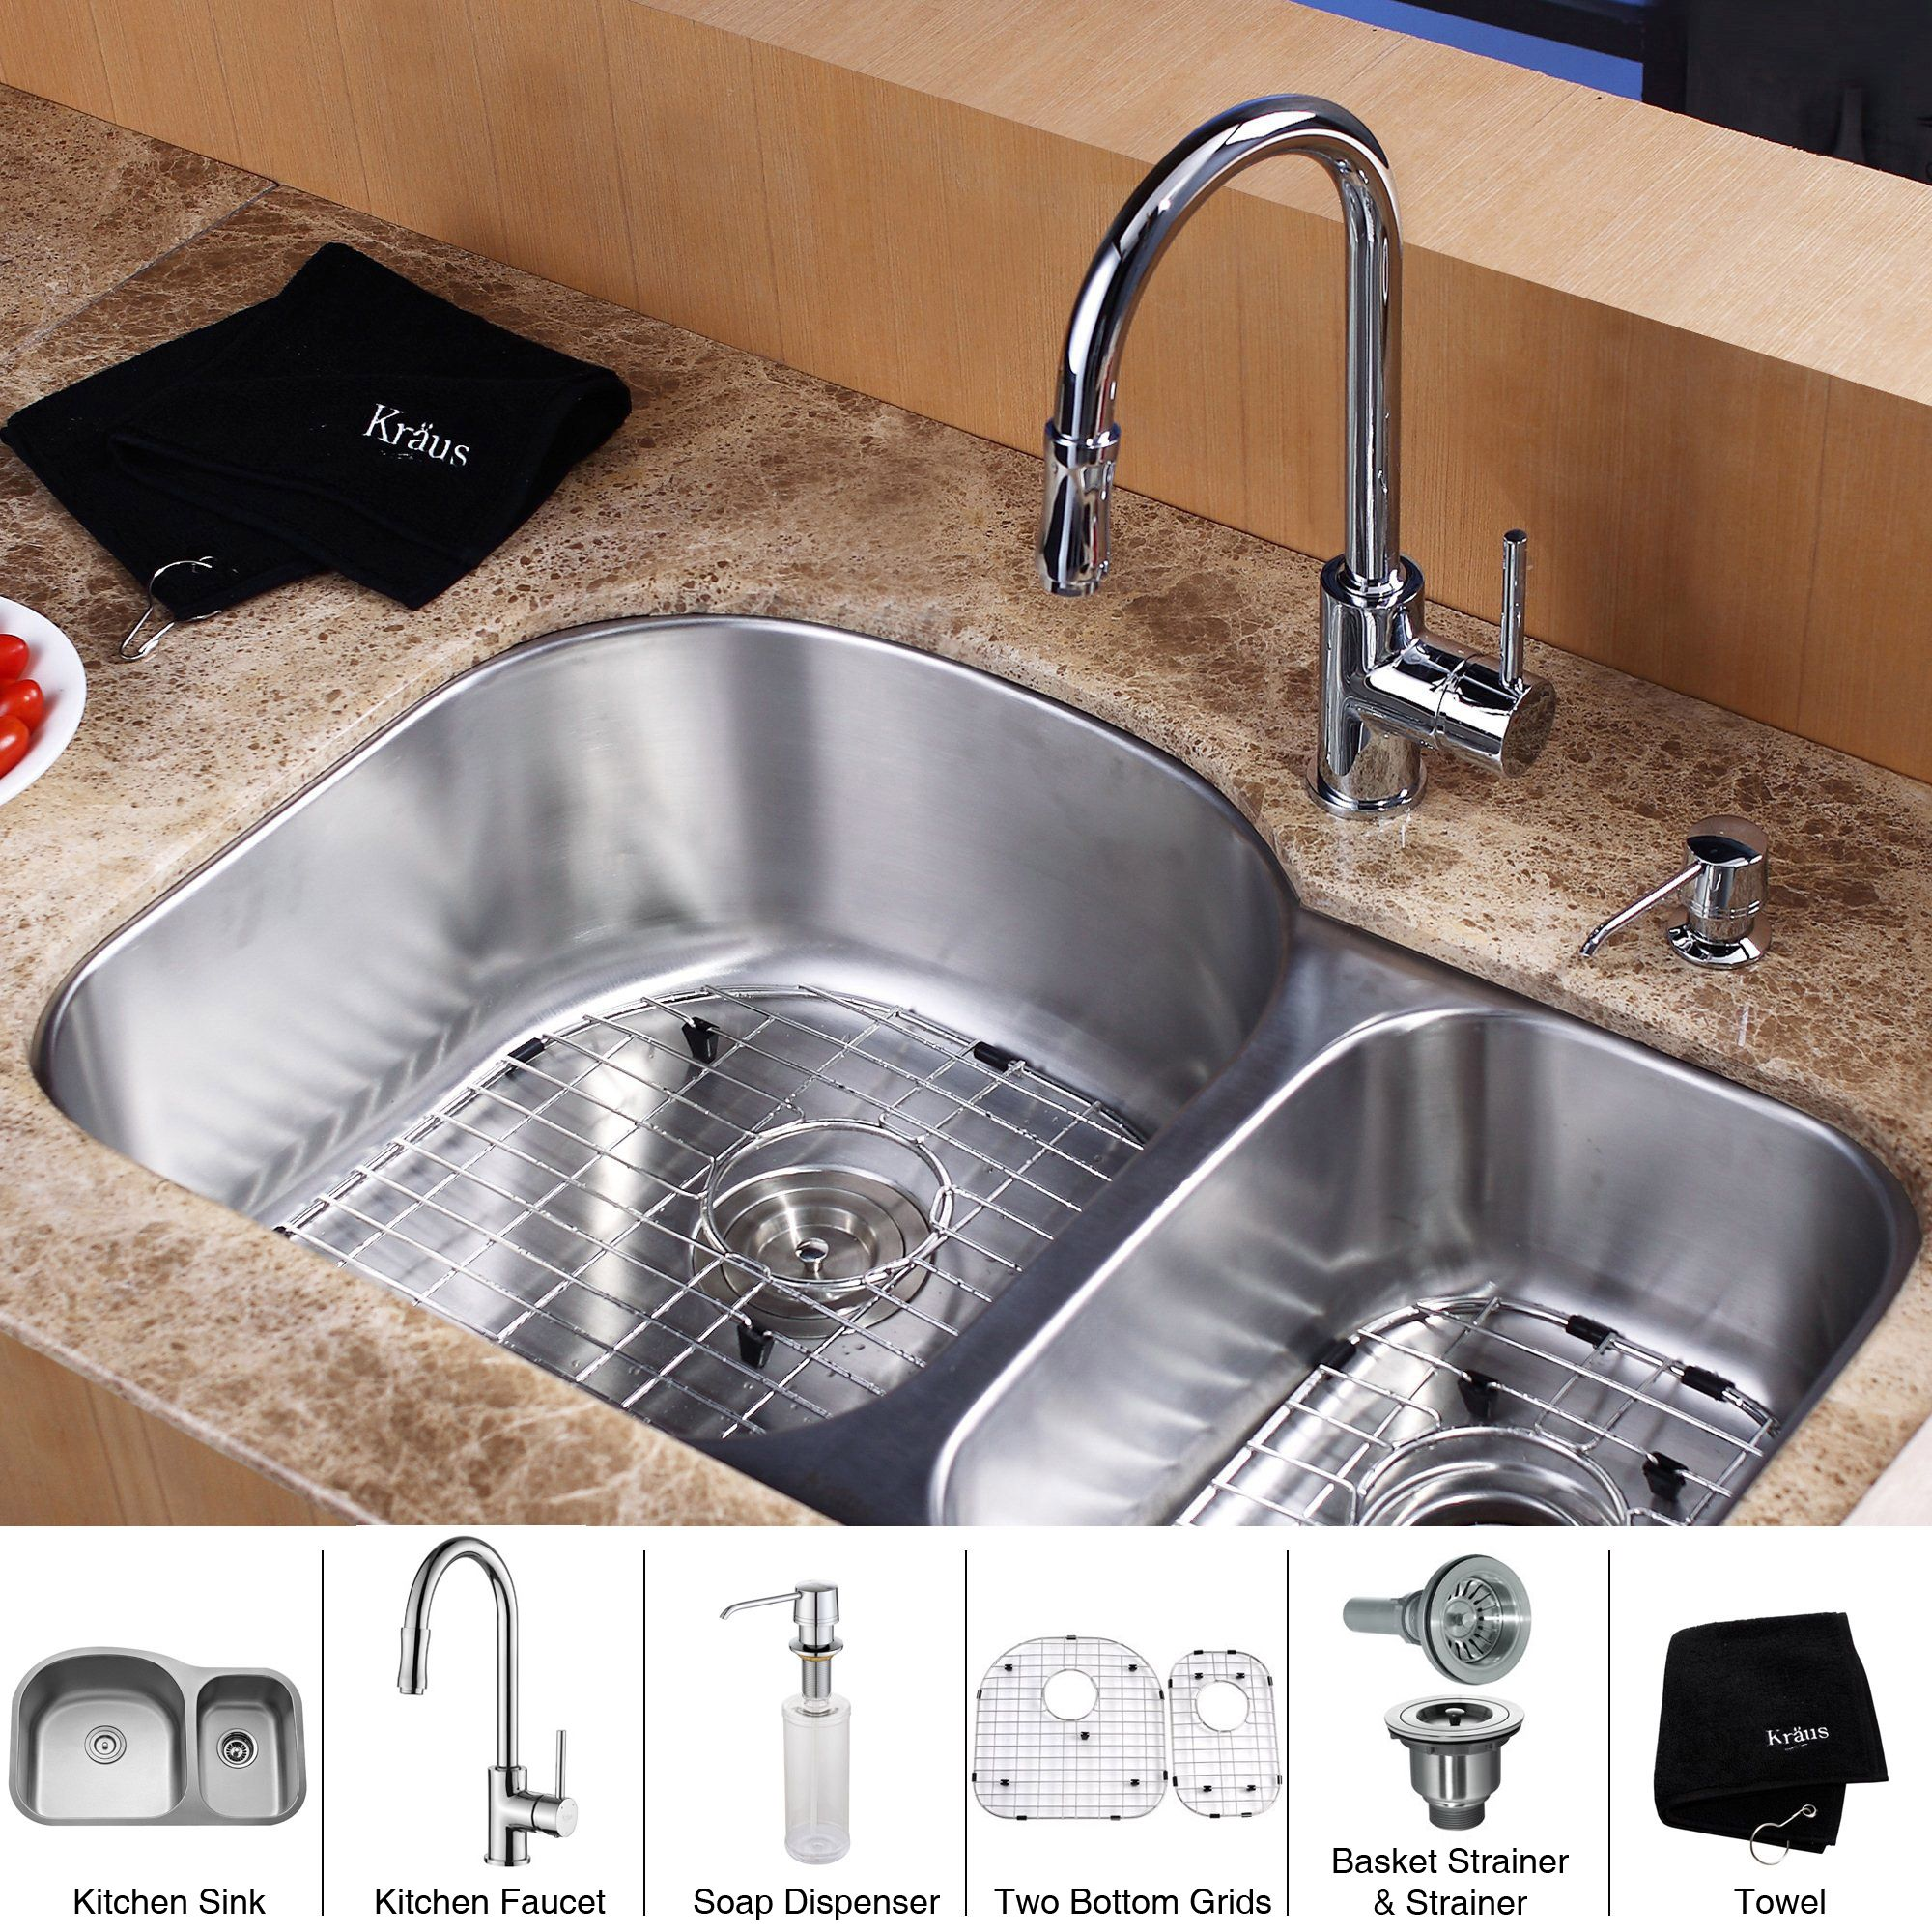 Kraus 32 Inch Undermount Double Bowl Stainless Steel Silver